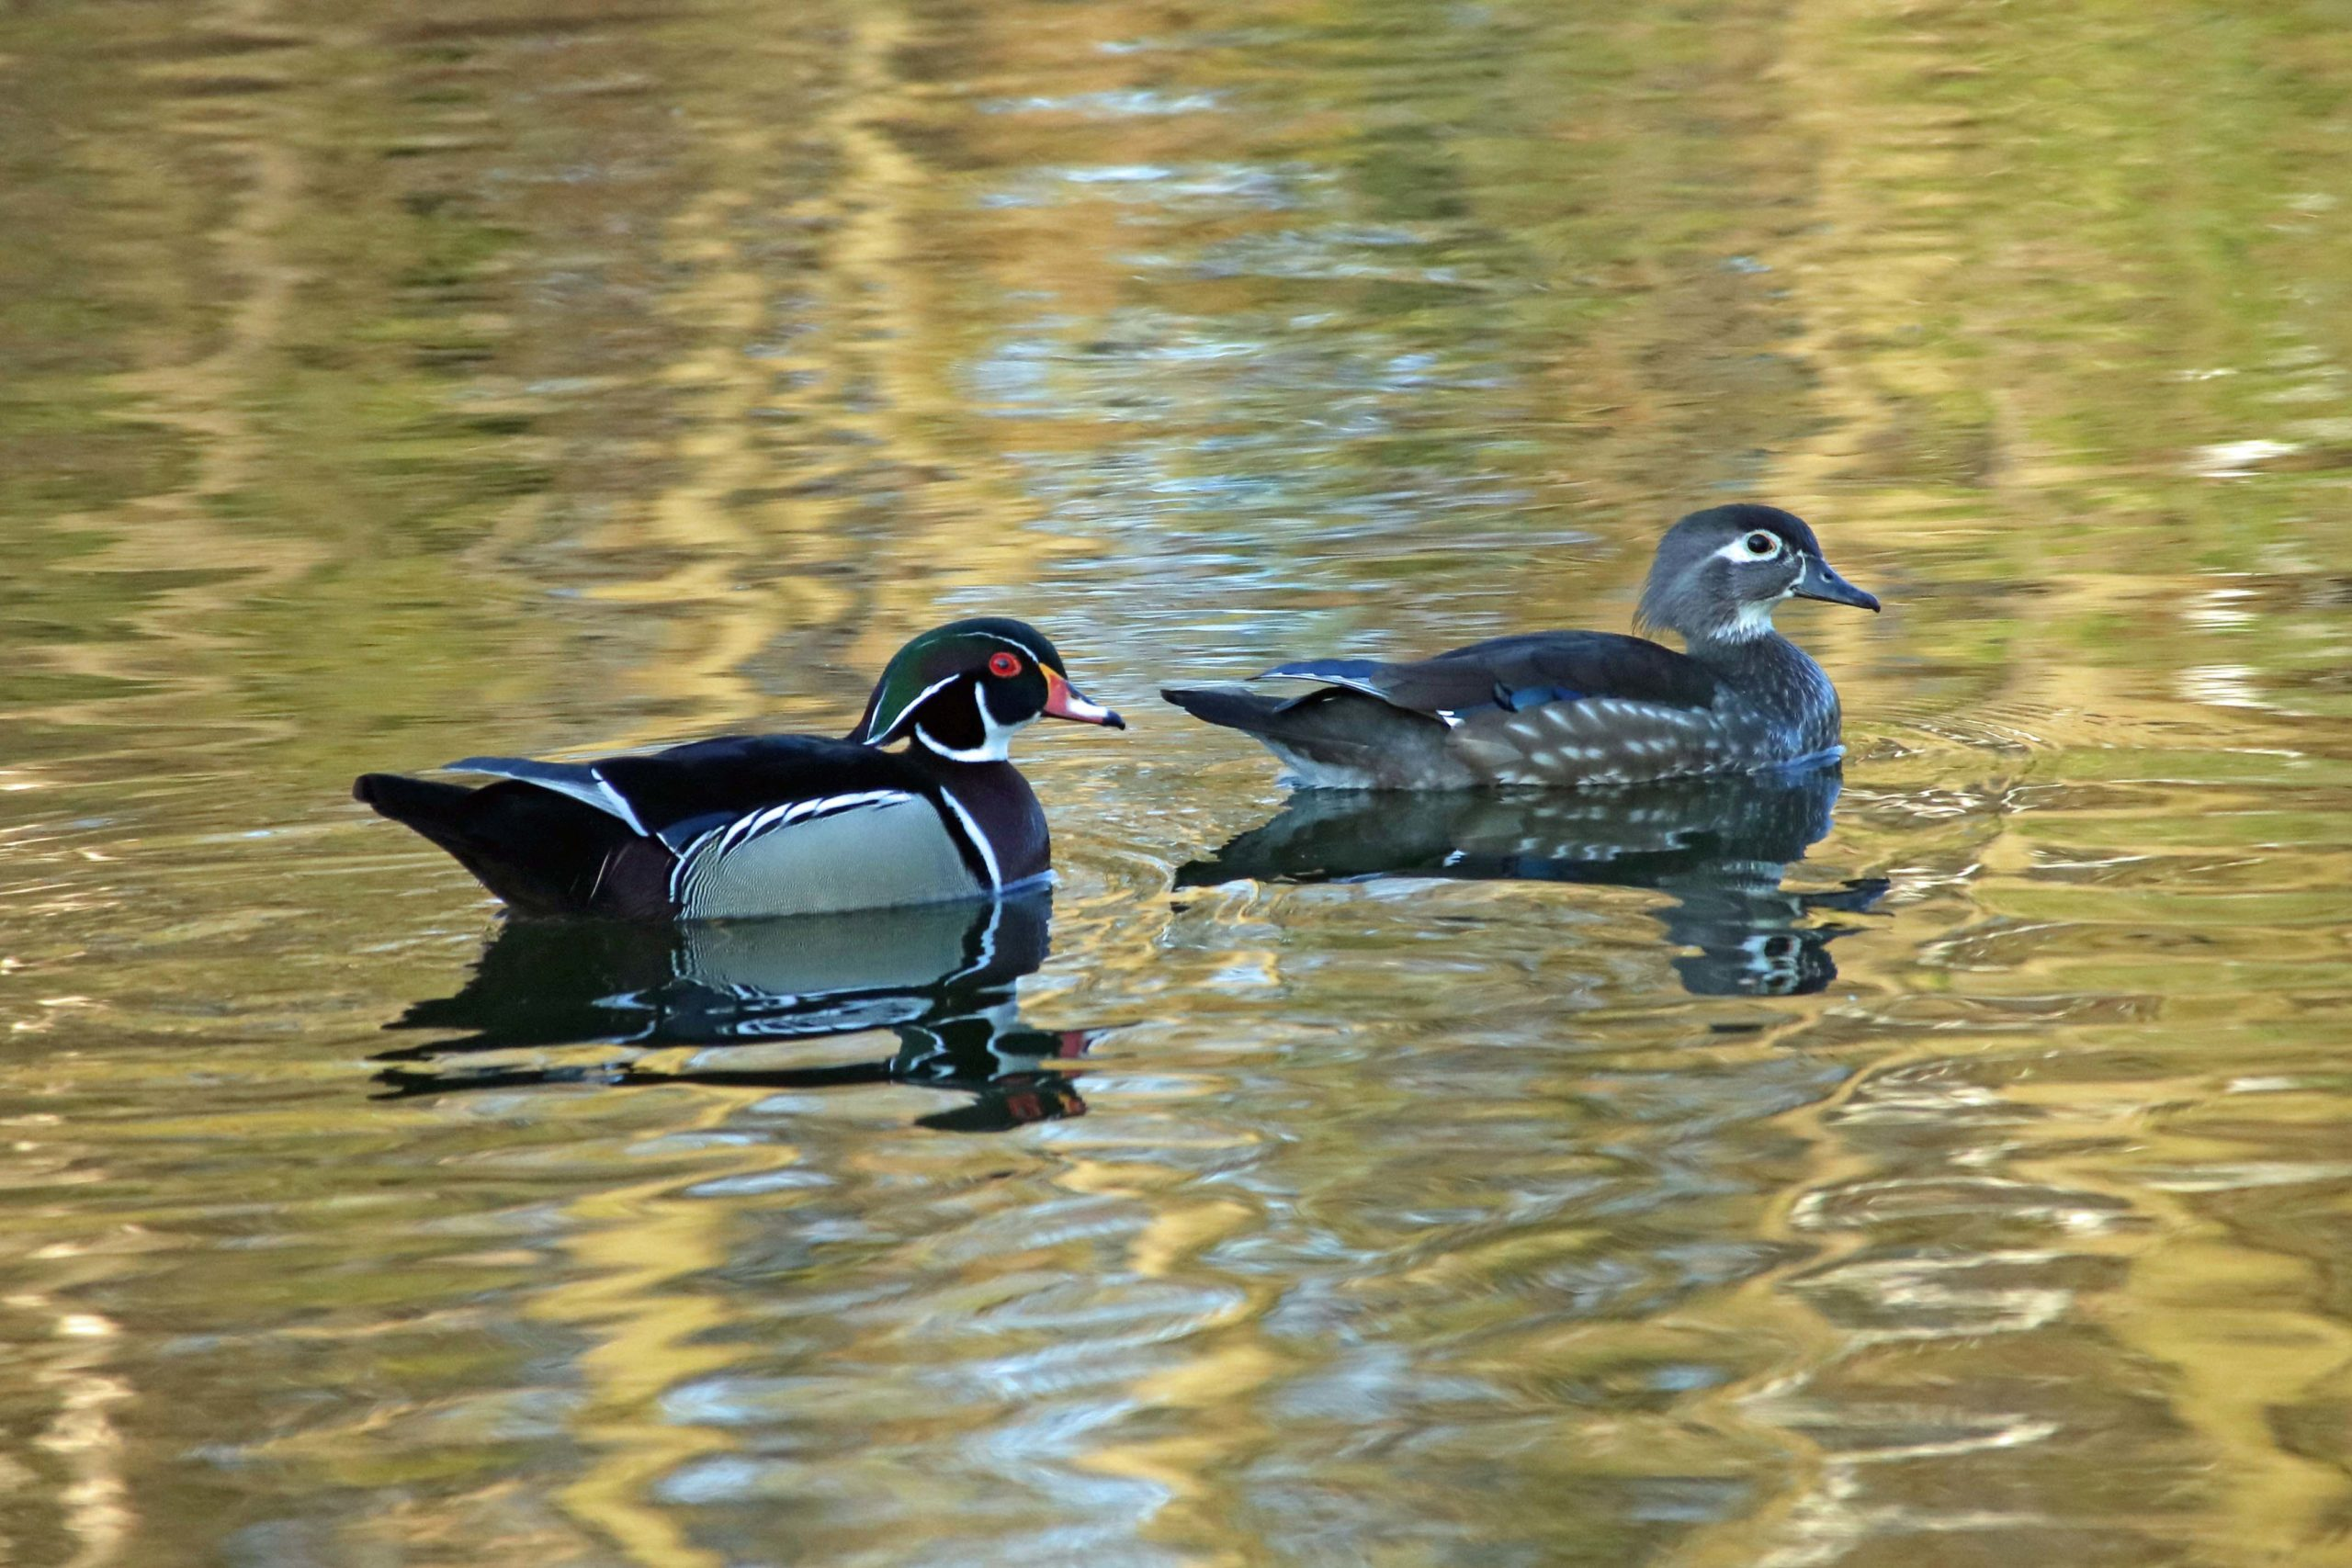 A pair of wood ducks swimming